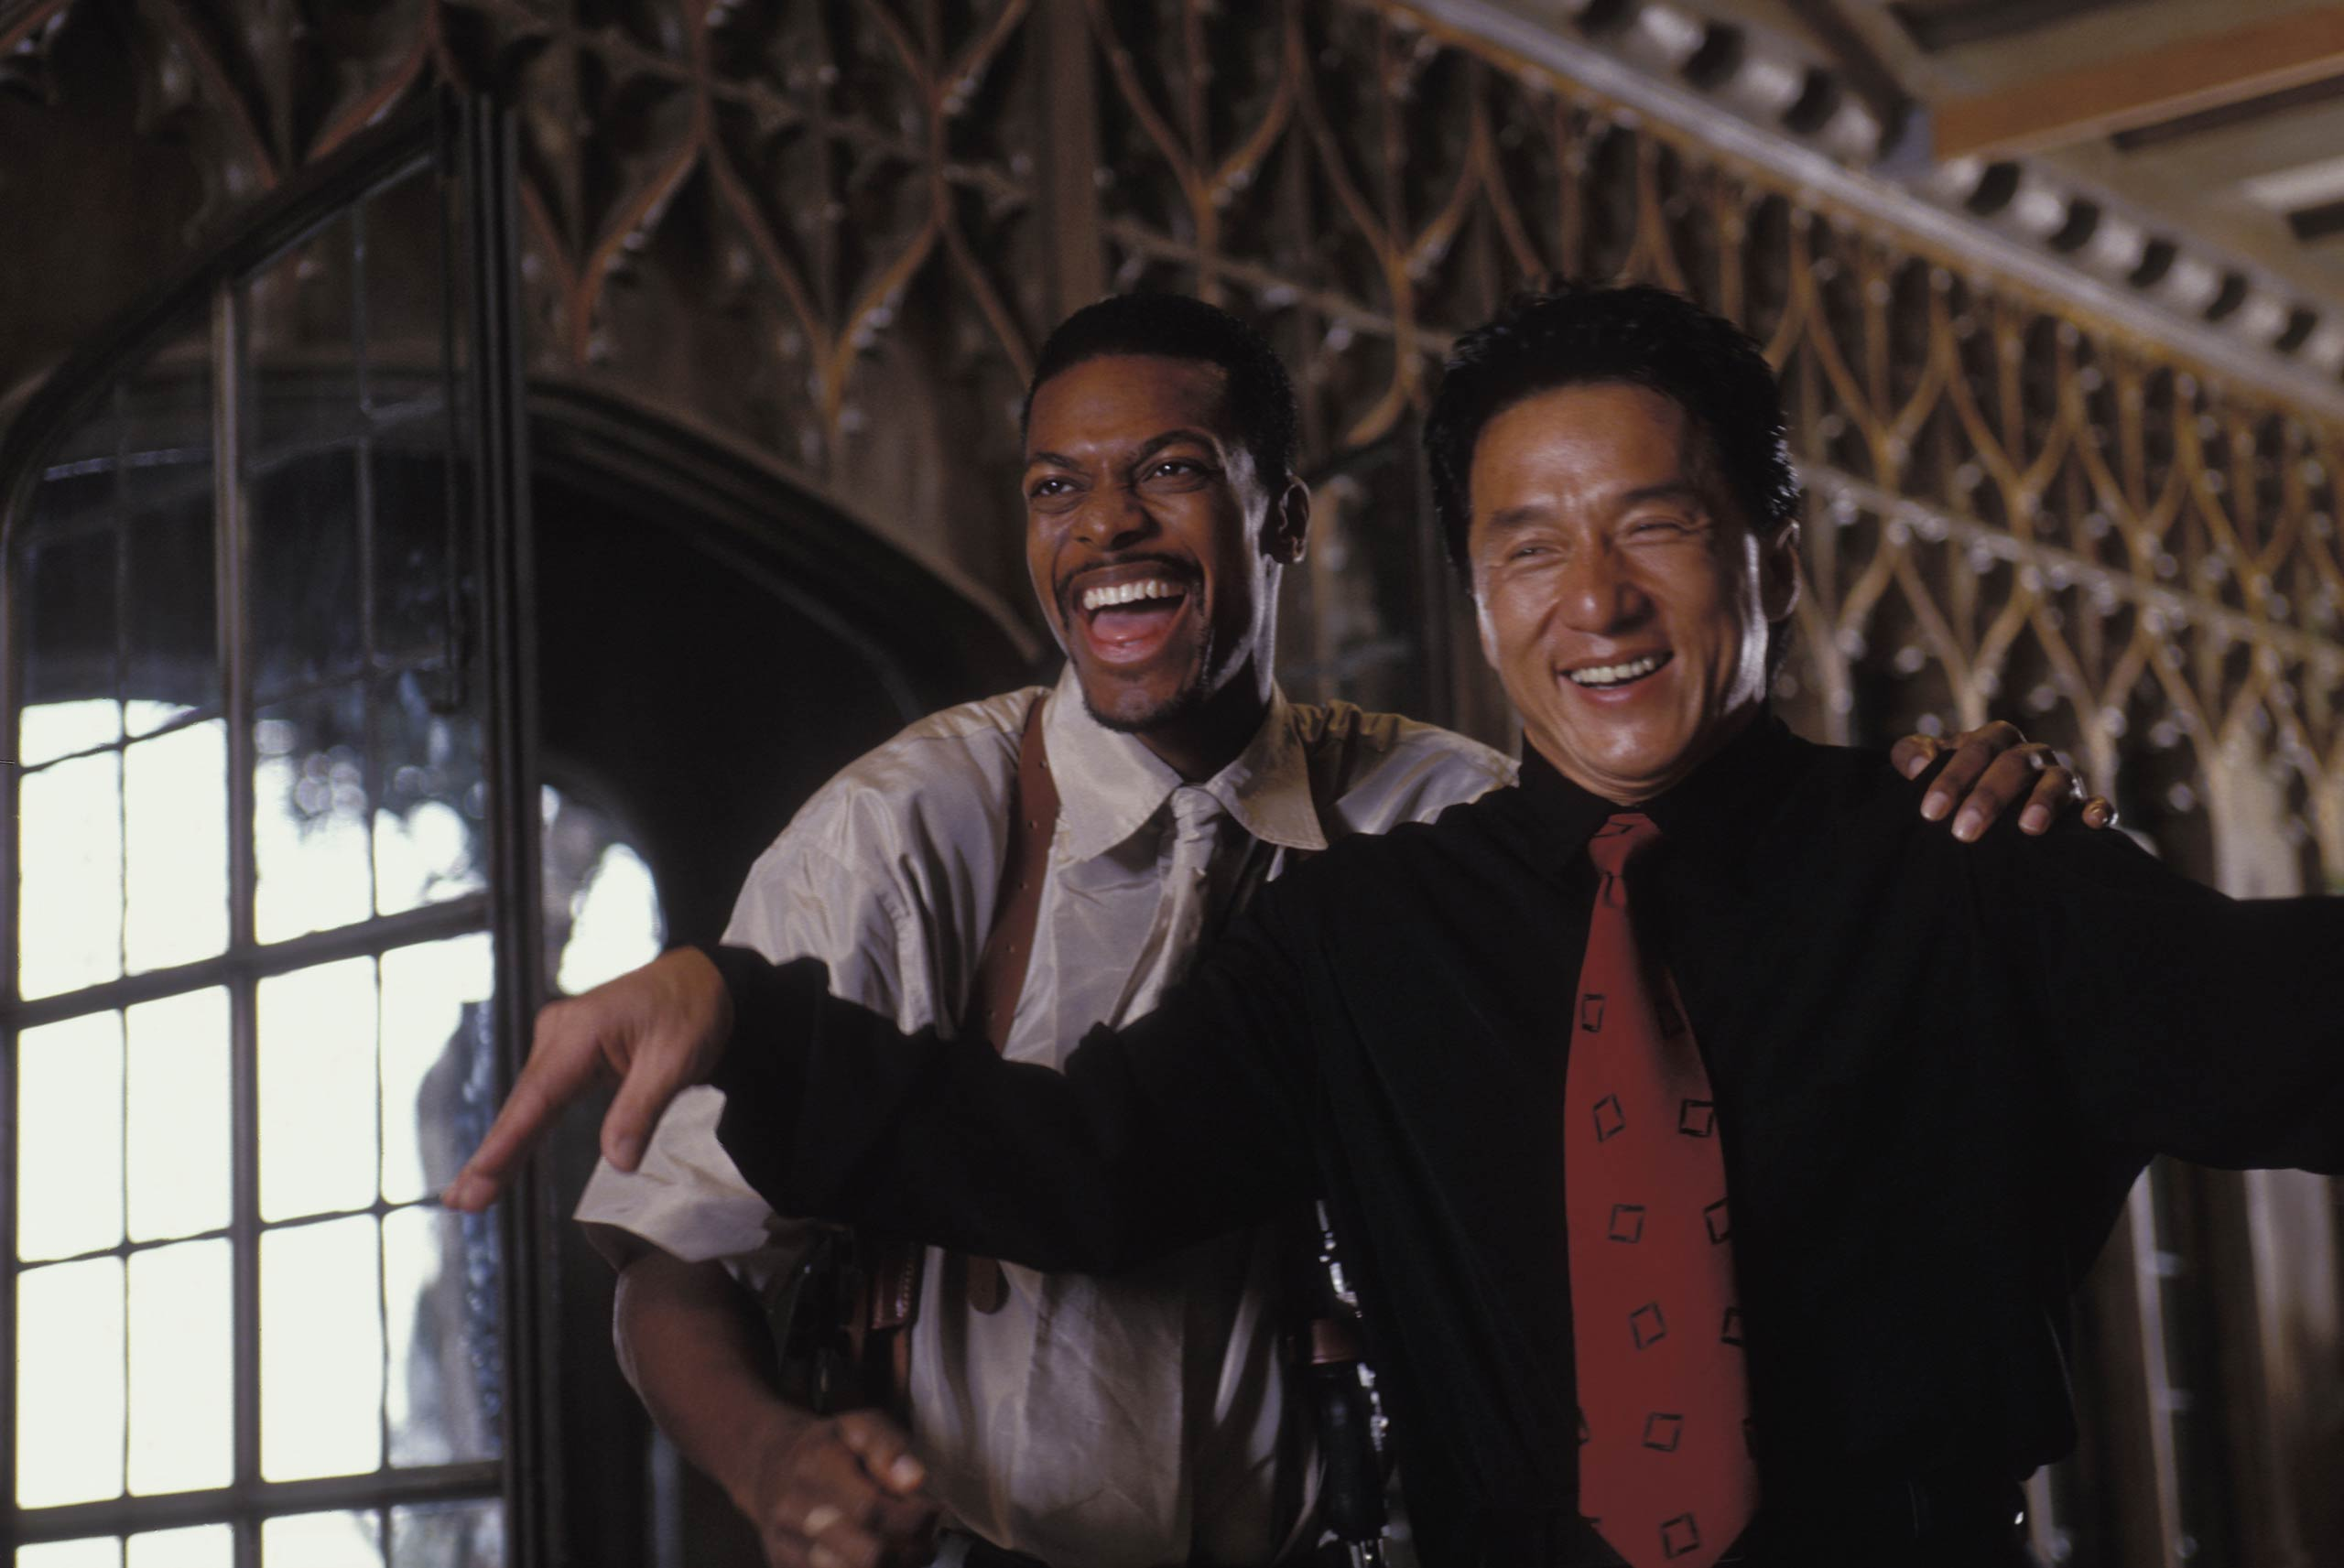 <strong><i>Rush Hour</i> (CBS)</strong>                                                                      The TV show version of <i>Rush Hour</i> will again pair up a play-by-the-rules Hong Kong police officer and a rebellious black Los Angeles cop in a procedural-type show.